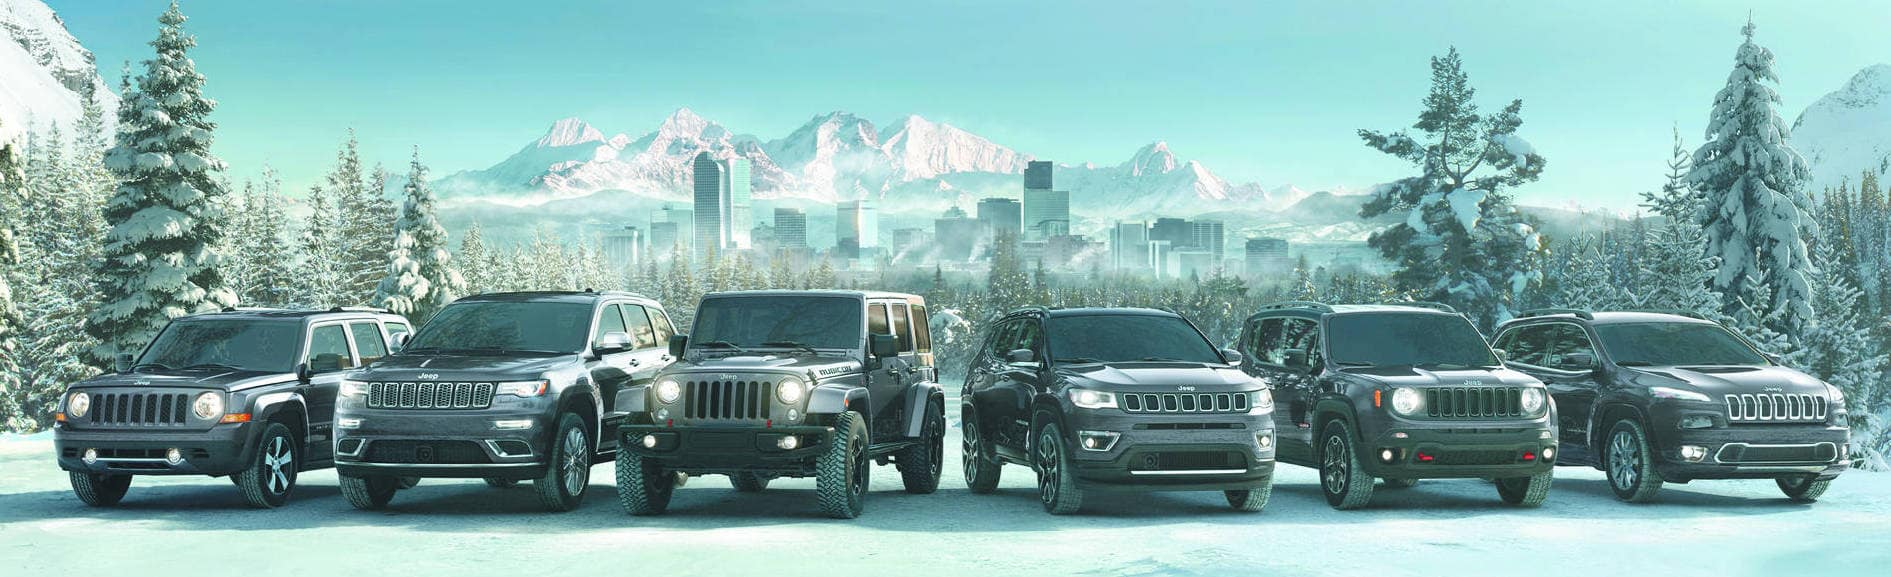 An all white Jeep model lineup infront of a Mountain